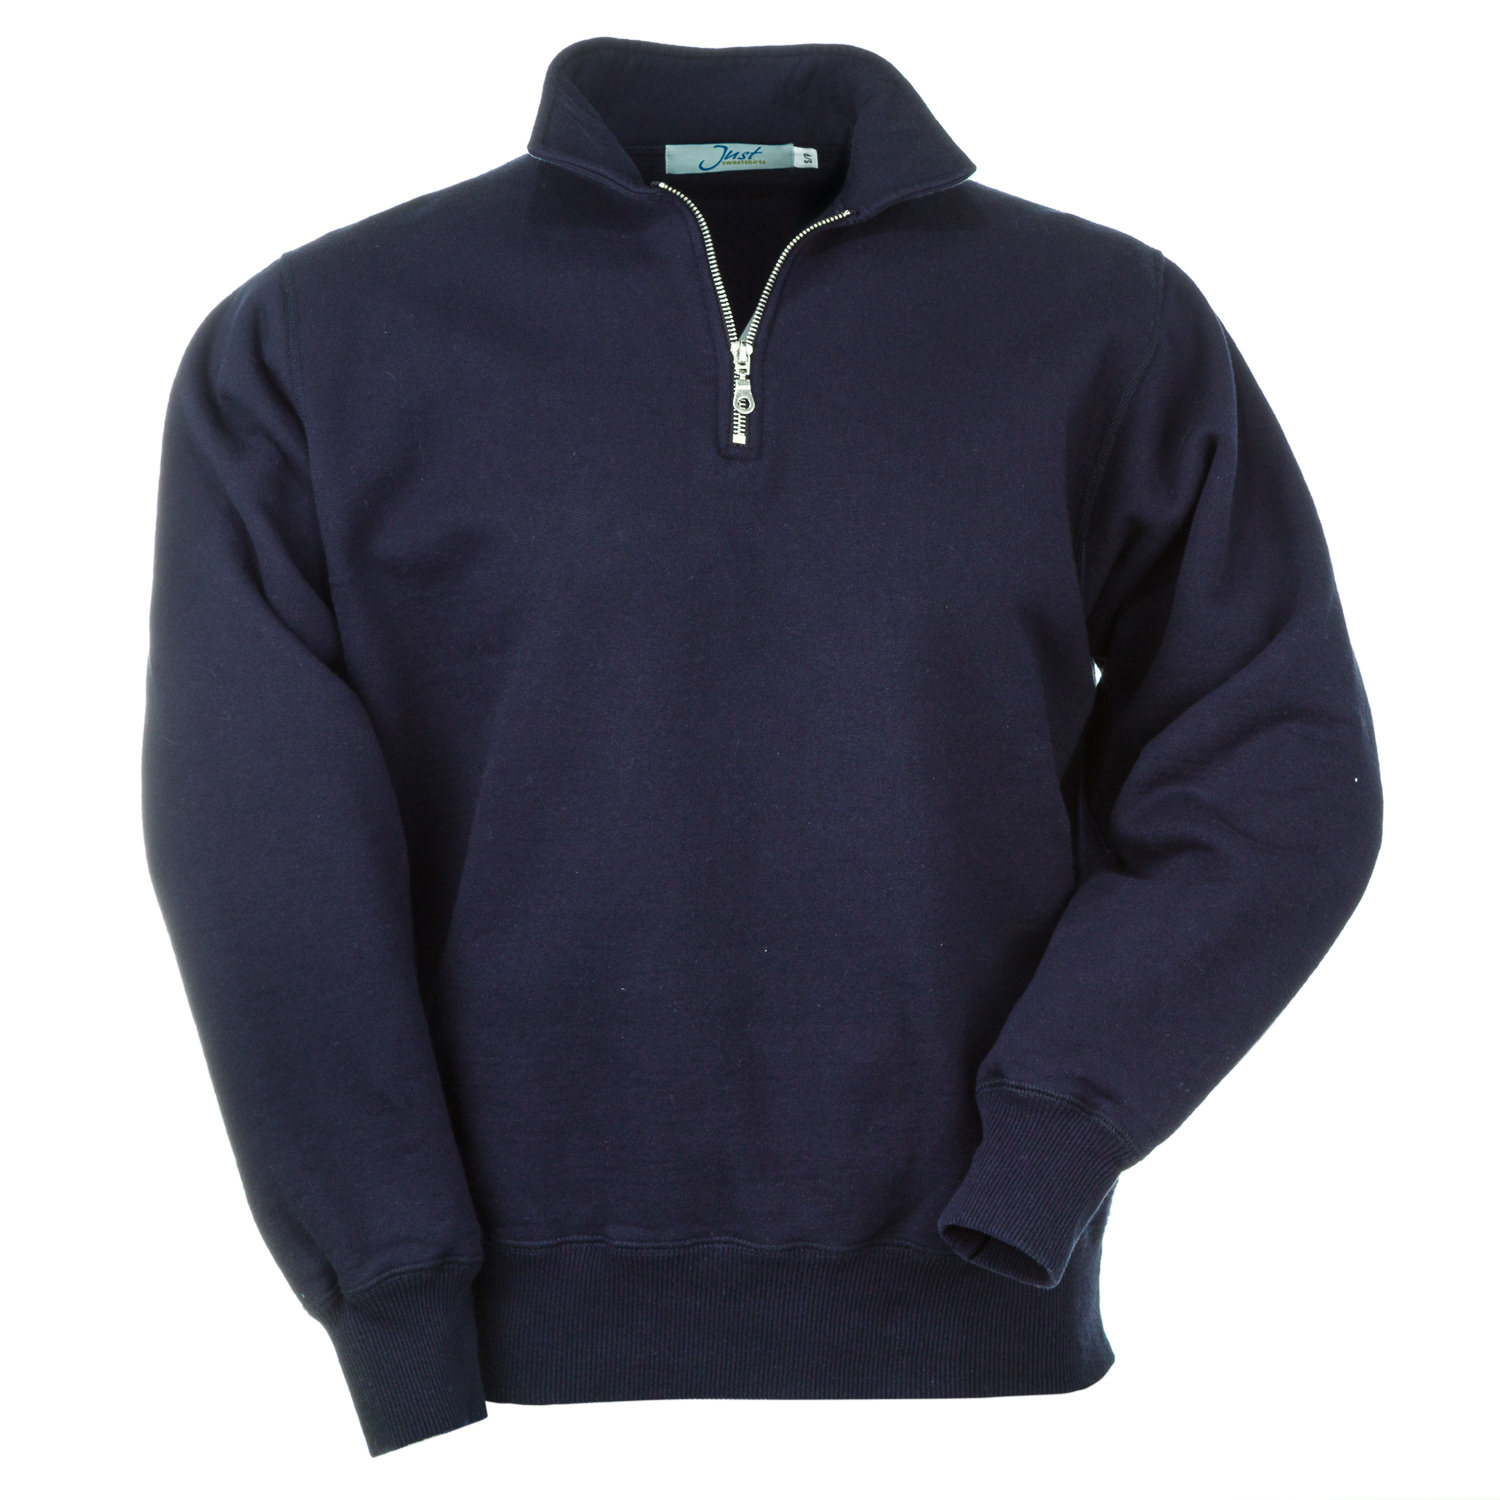 Zip Neck Dark Navy 100% Cotton